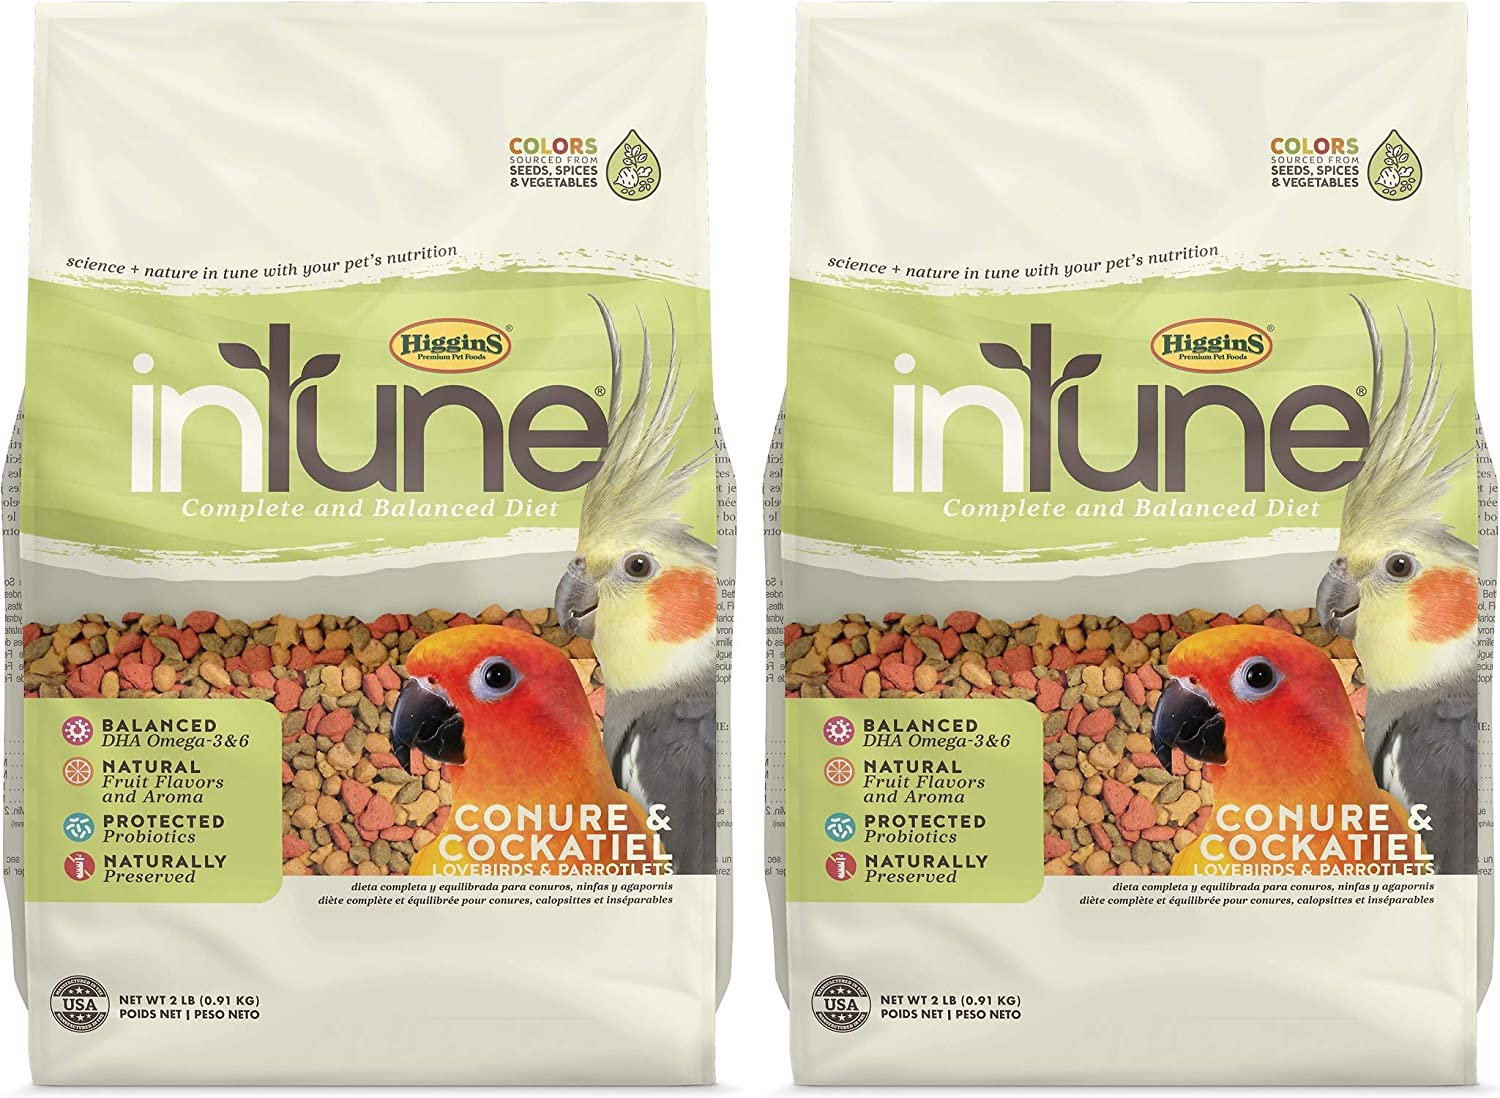 Higgins 2 Pack of Intune Complete and Balanced Diet Conure and Cockatiel Food, 2 Pounds Each